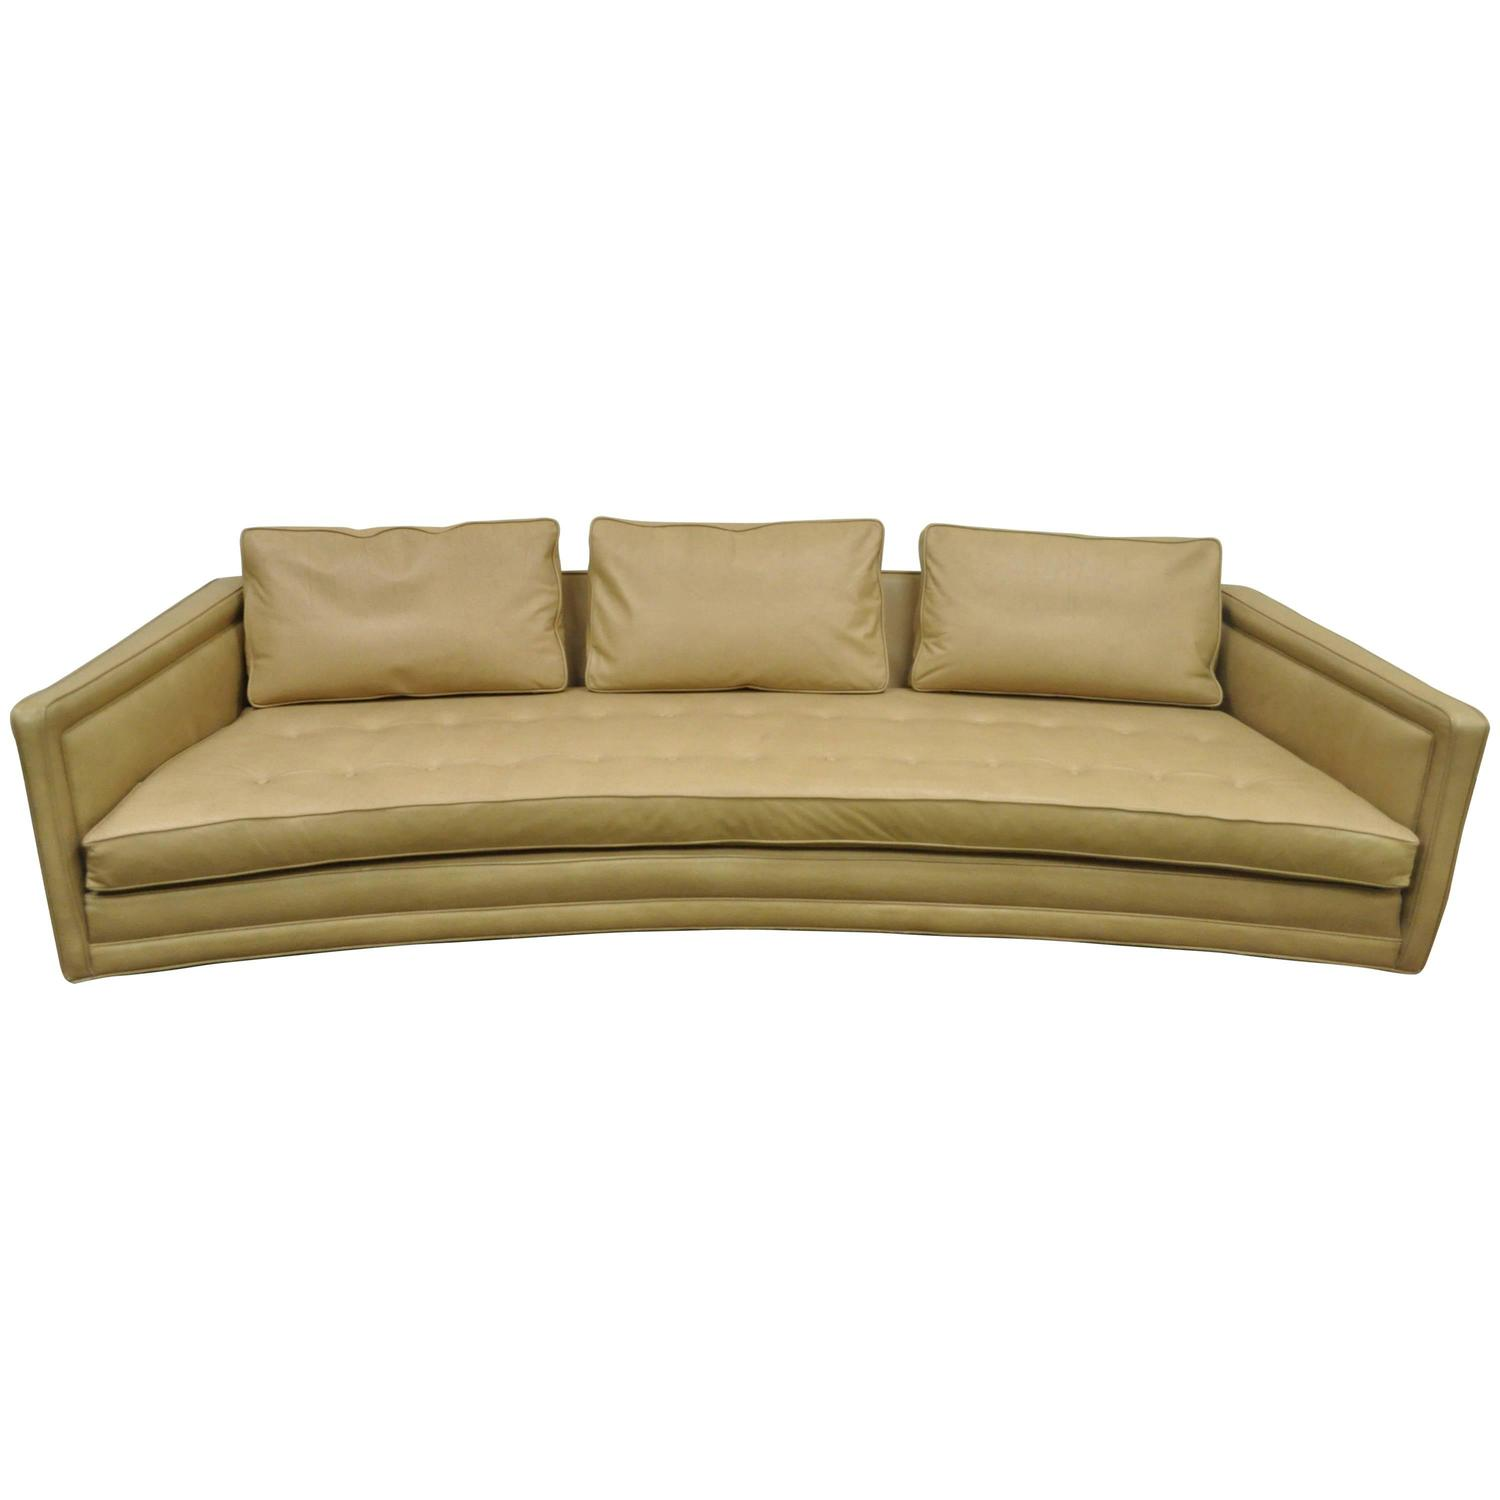 Mid Century Modern Tufted Sofa in the Style of Harvey Probber For